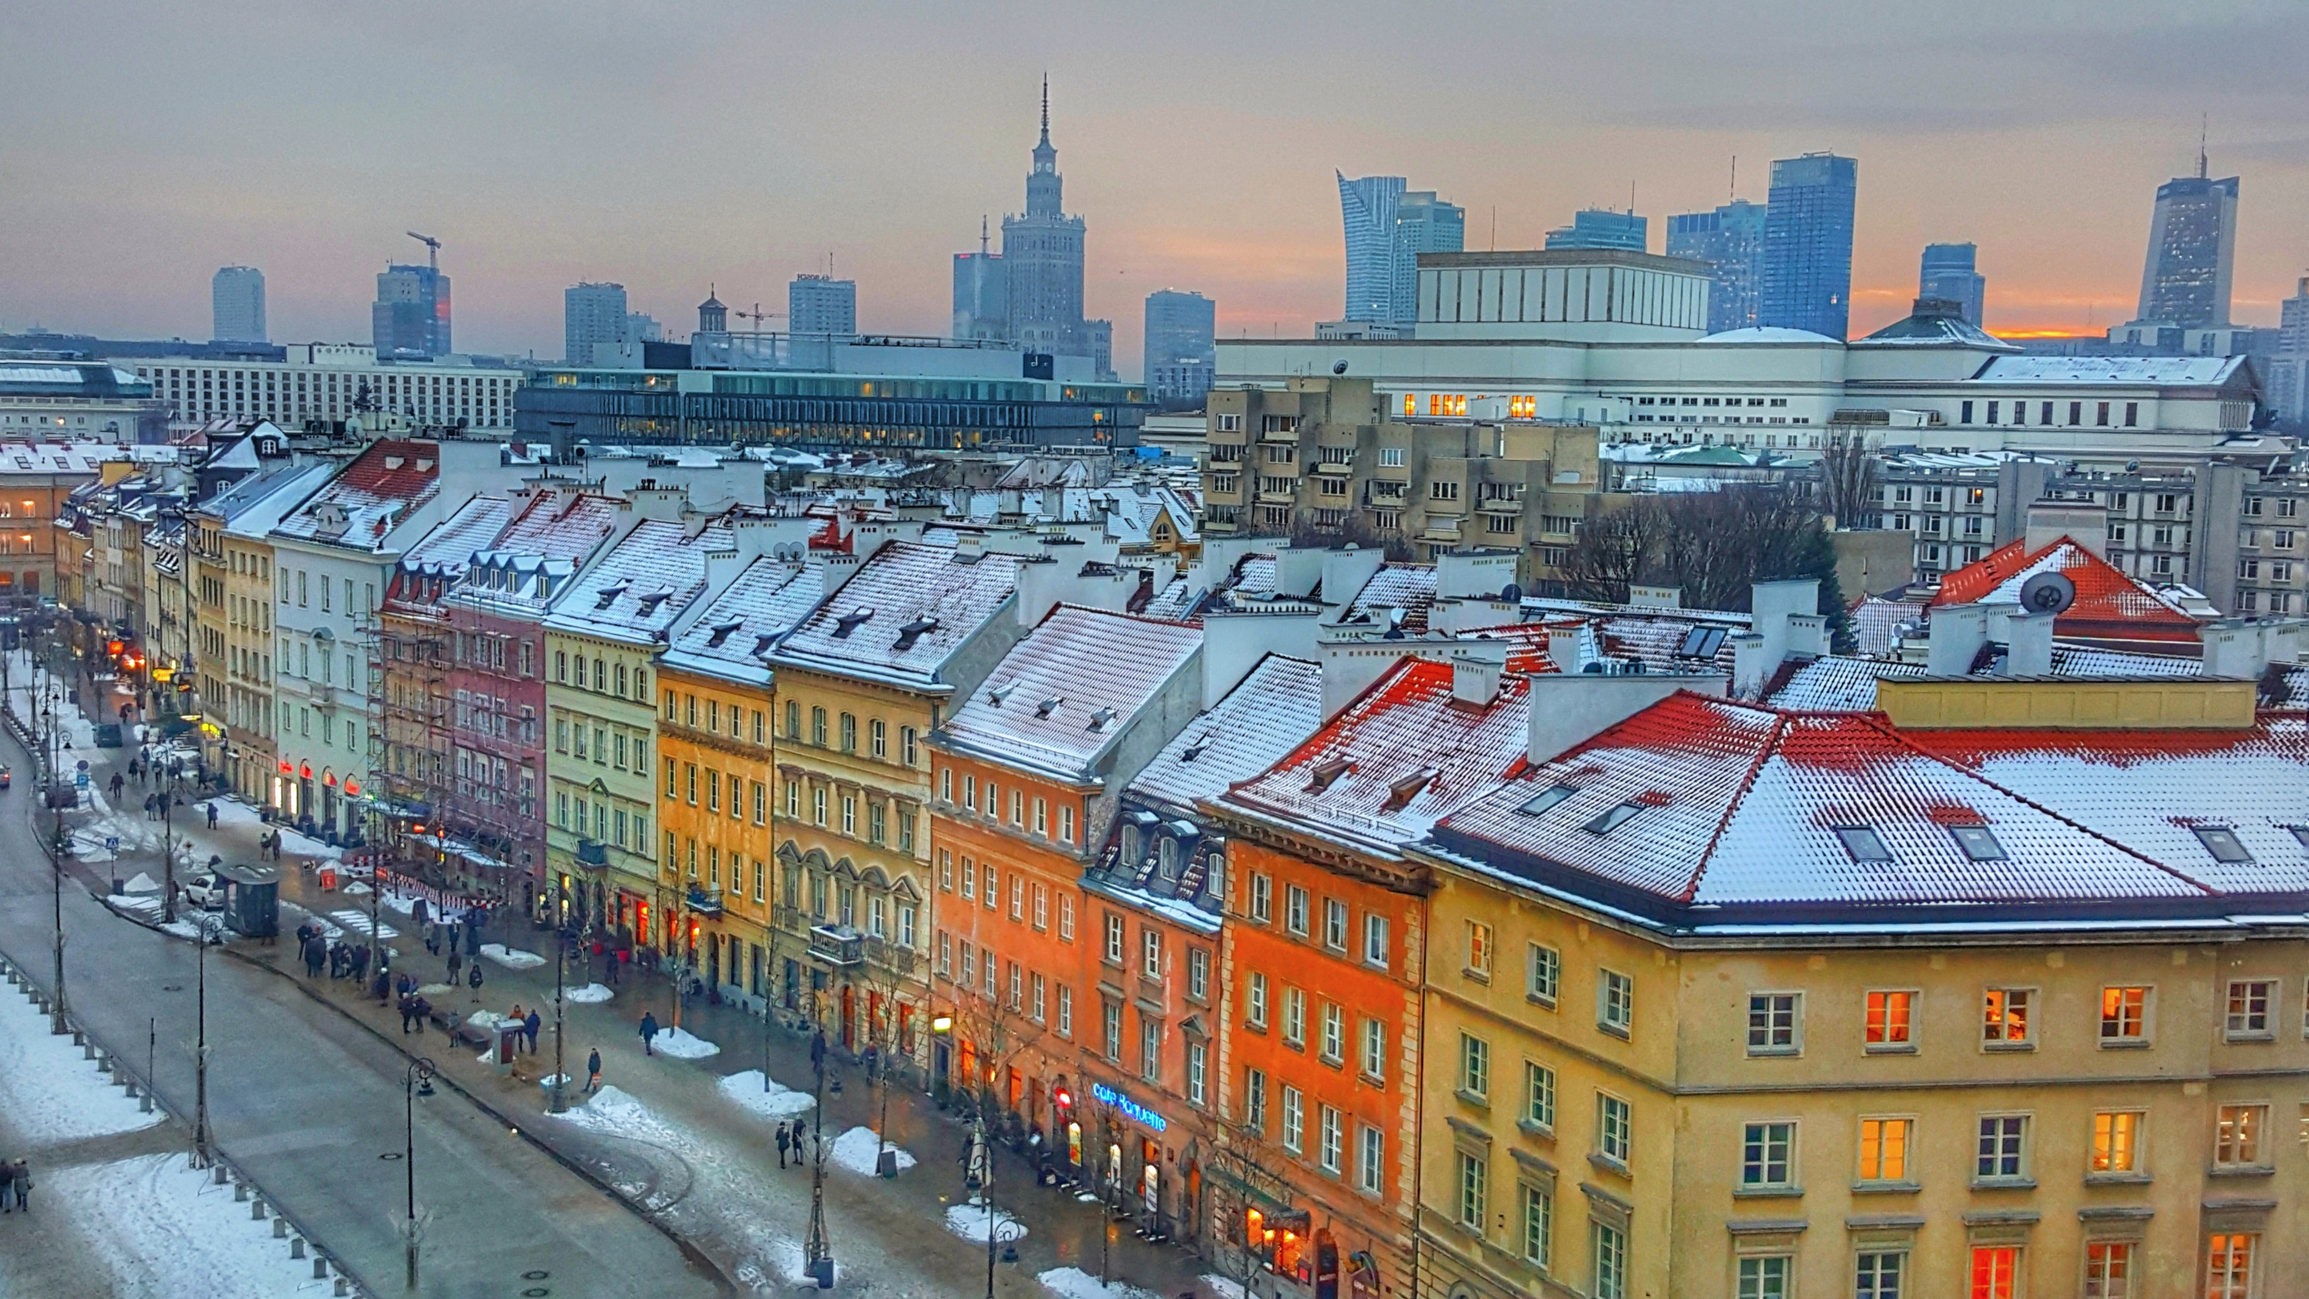 Snowing in Warsaw, Poland